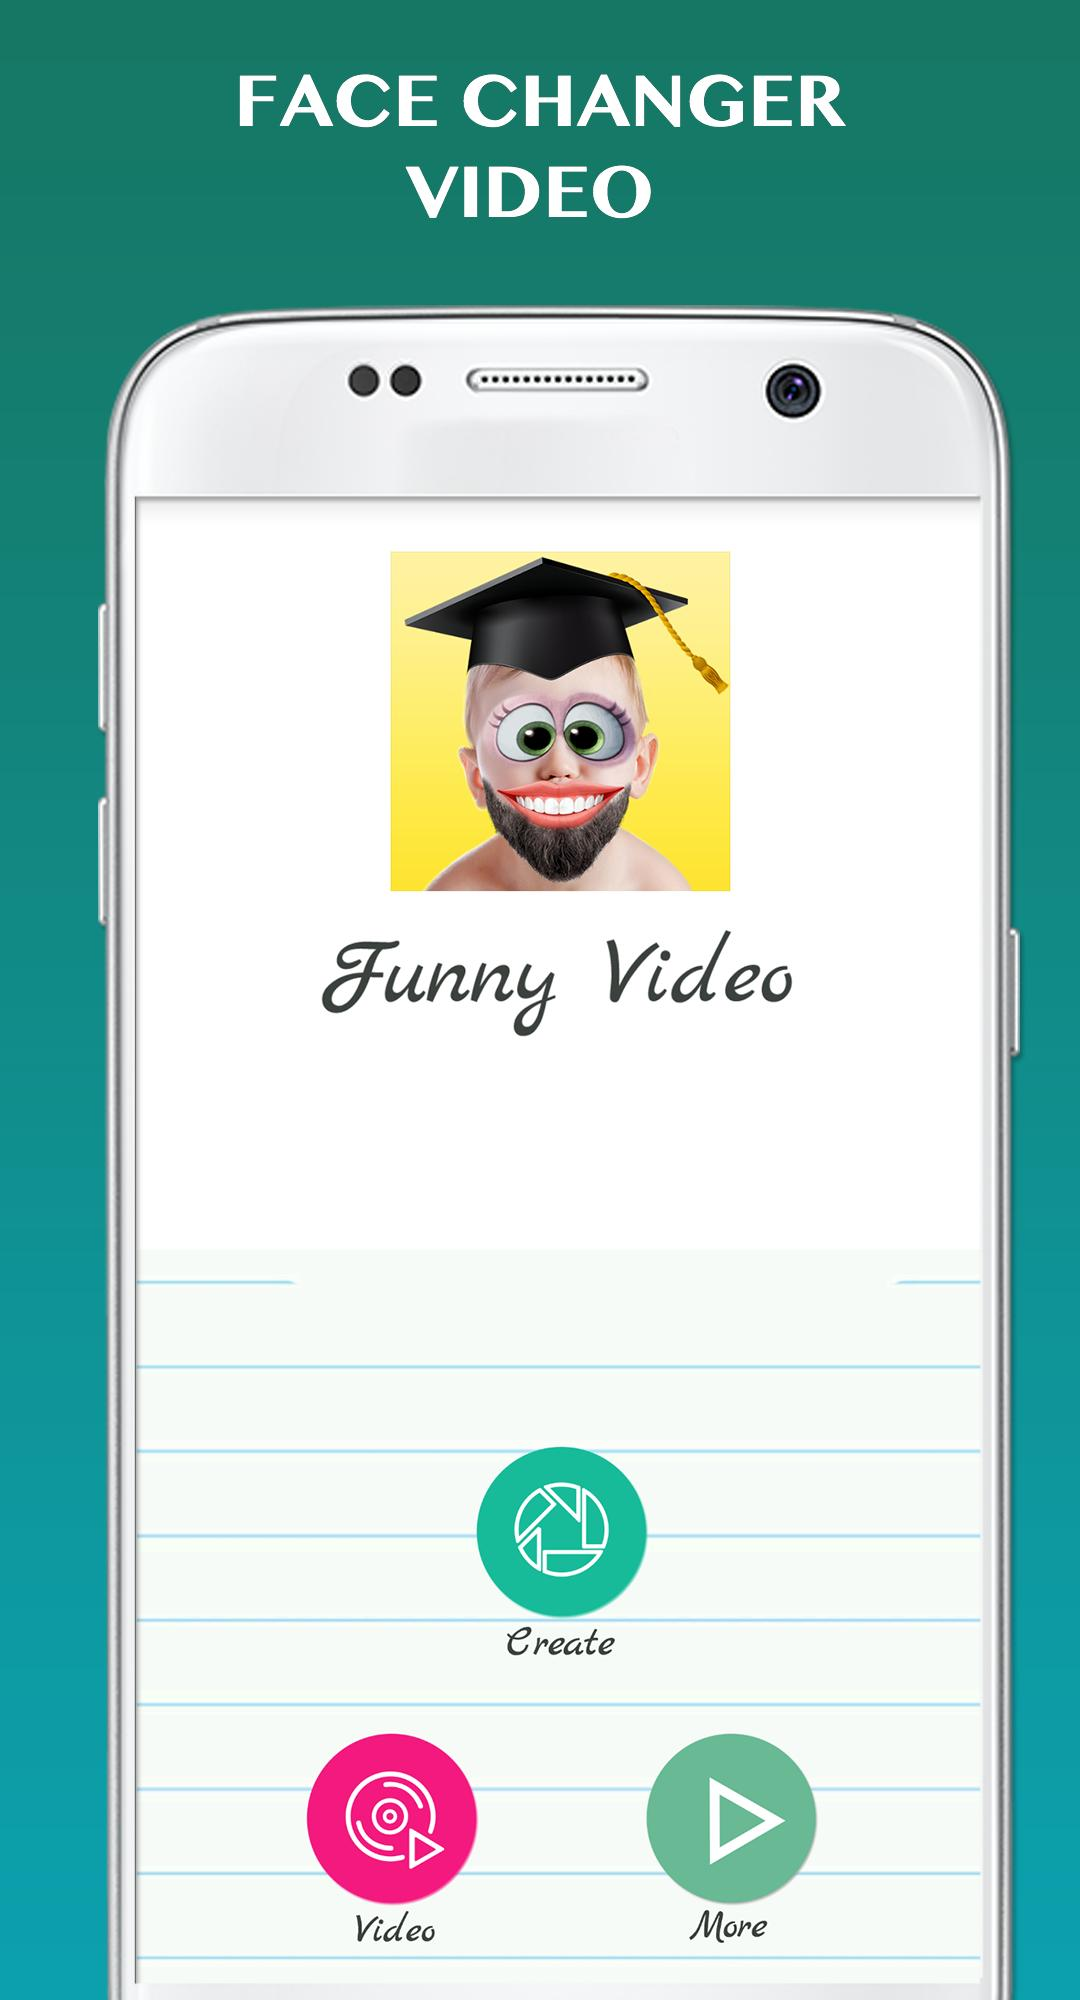 Face Changer Video for Android - APK Download